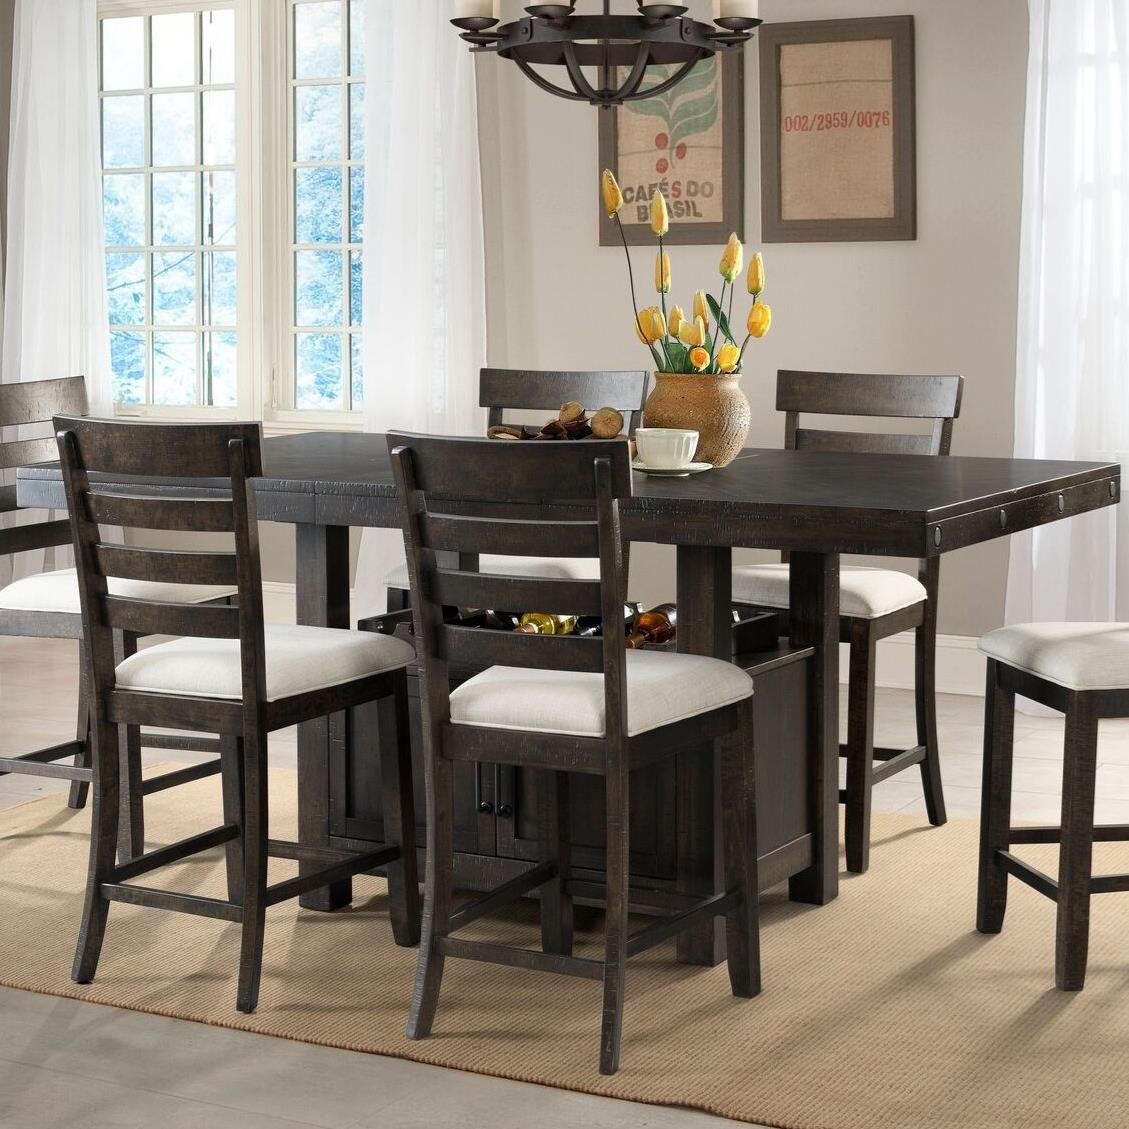 Elements Colorado Counter Height Dining Set With Built In Storage Royal Furniture Pub Table And Stool Sets